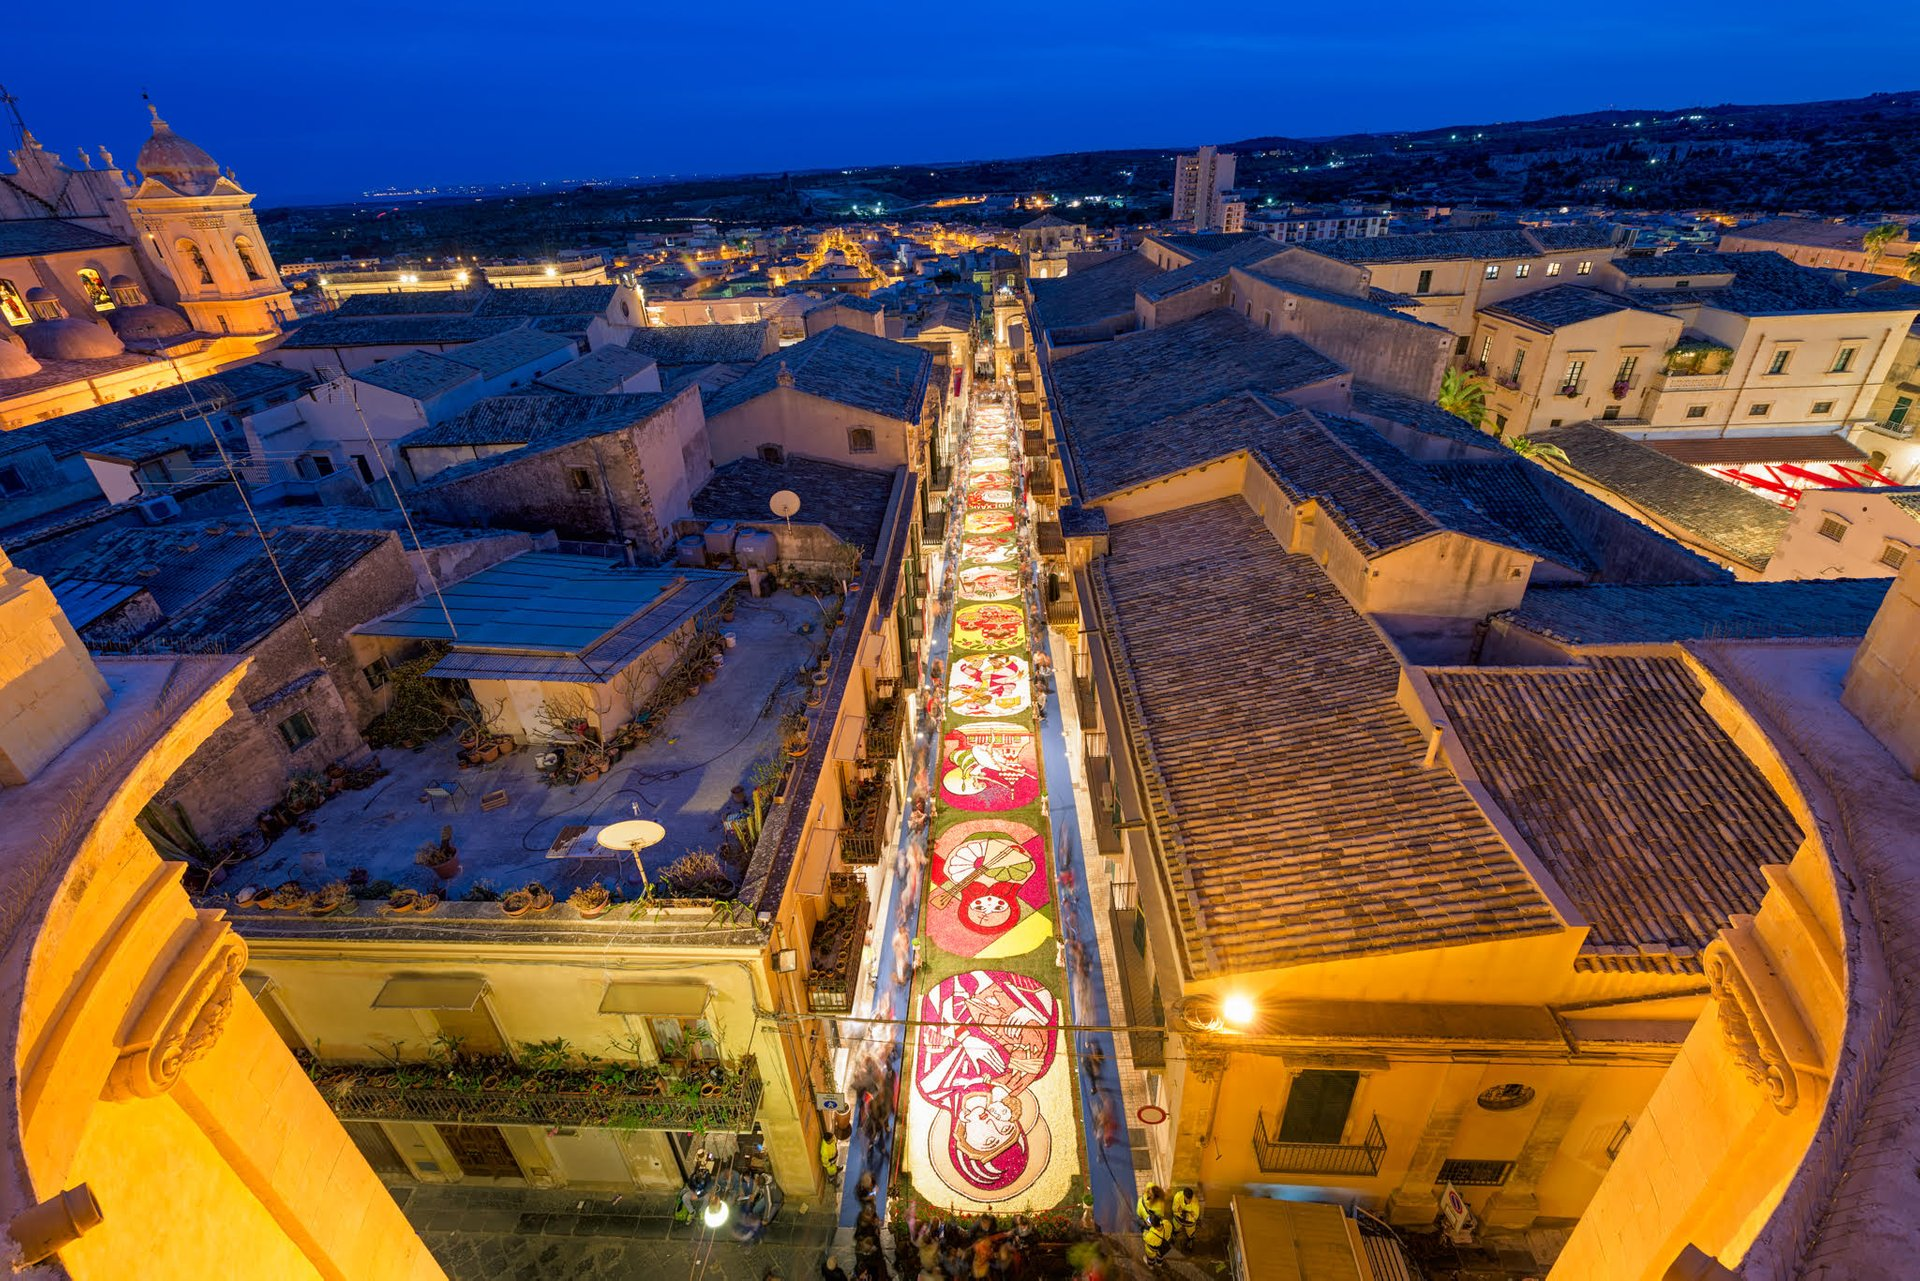 A view from above of Via Nicolaci, Noto, taken from the balcony that joins the two bell towers of the Church of Montevergini 2020